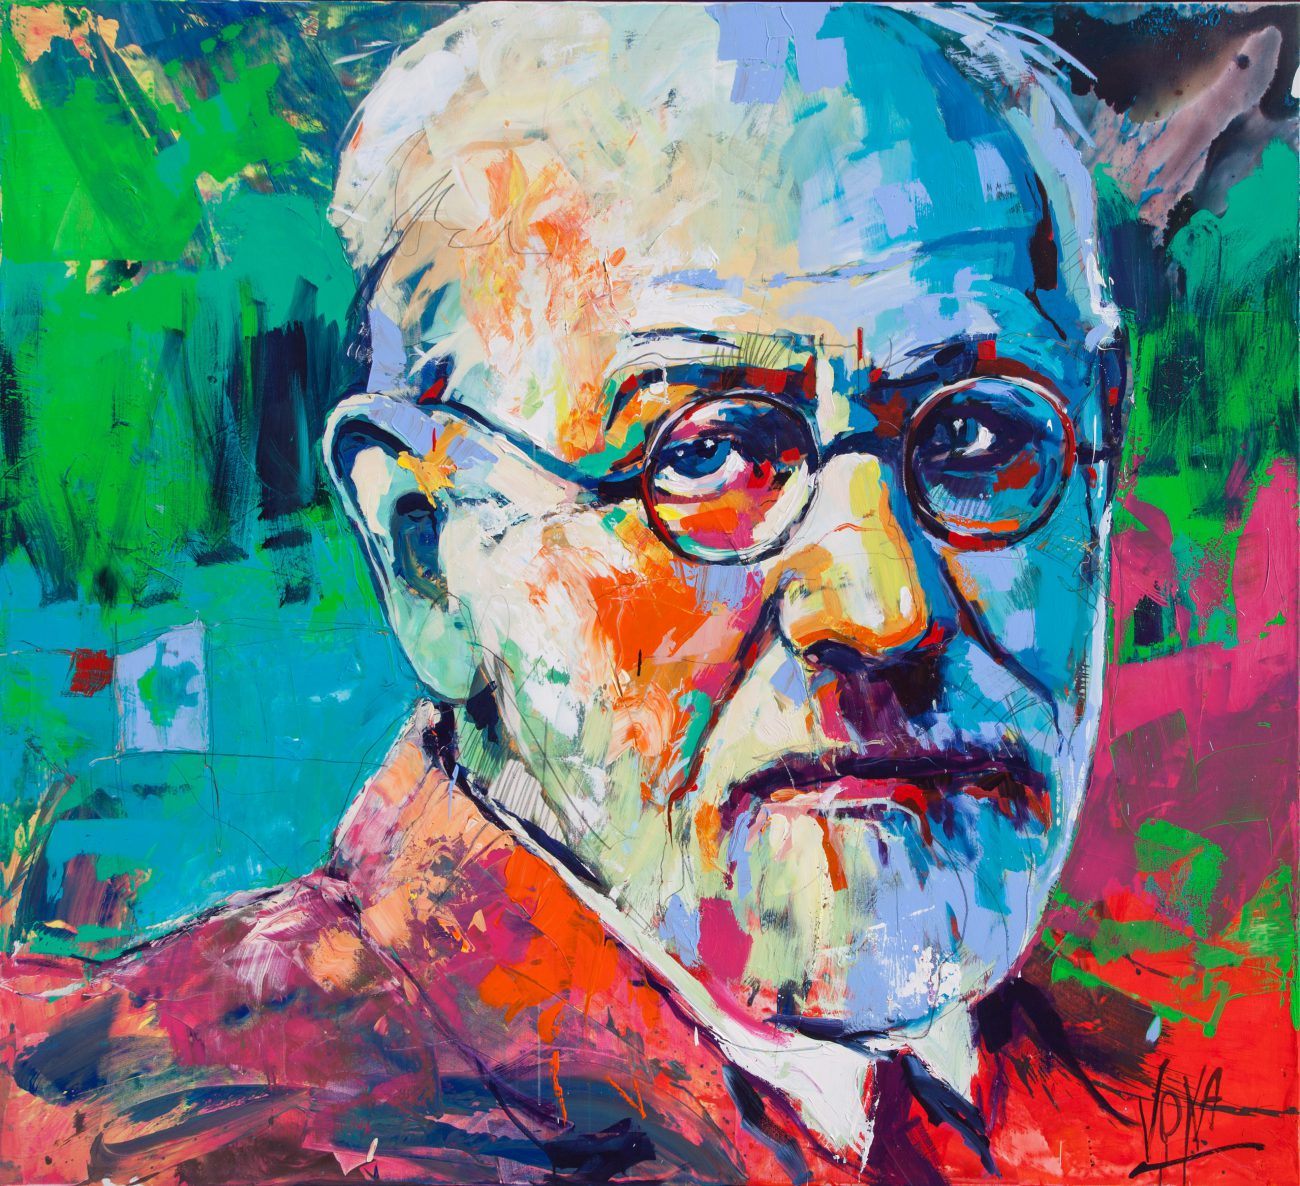 Sigmund Freud, Artwork by Voak